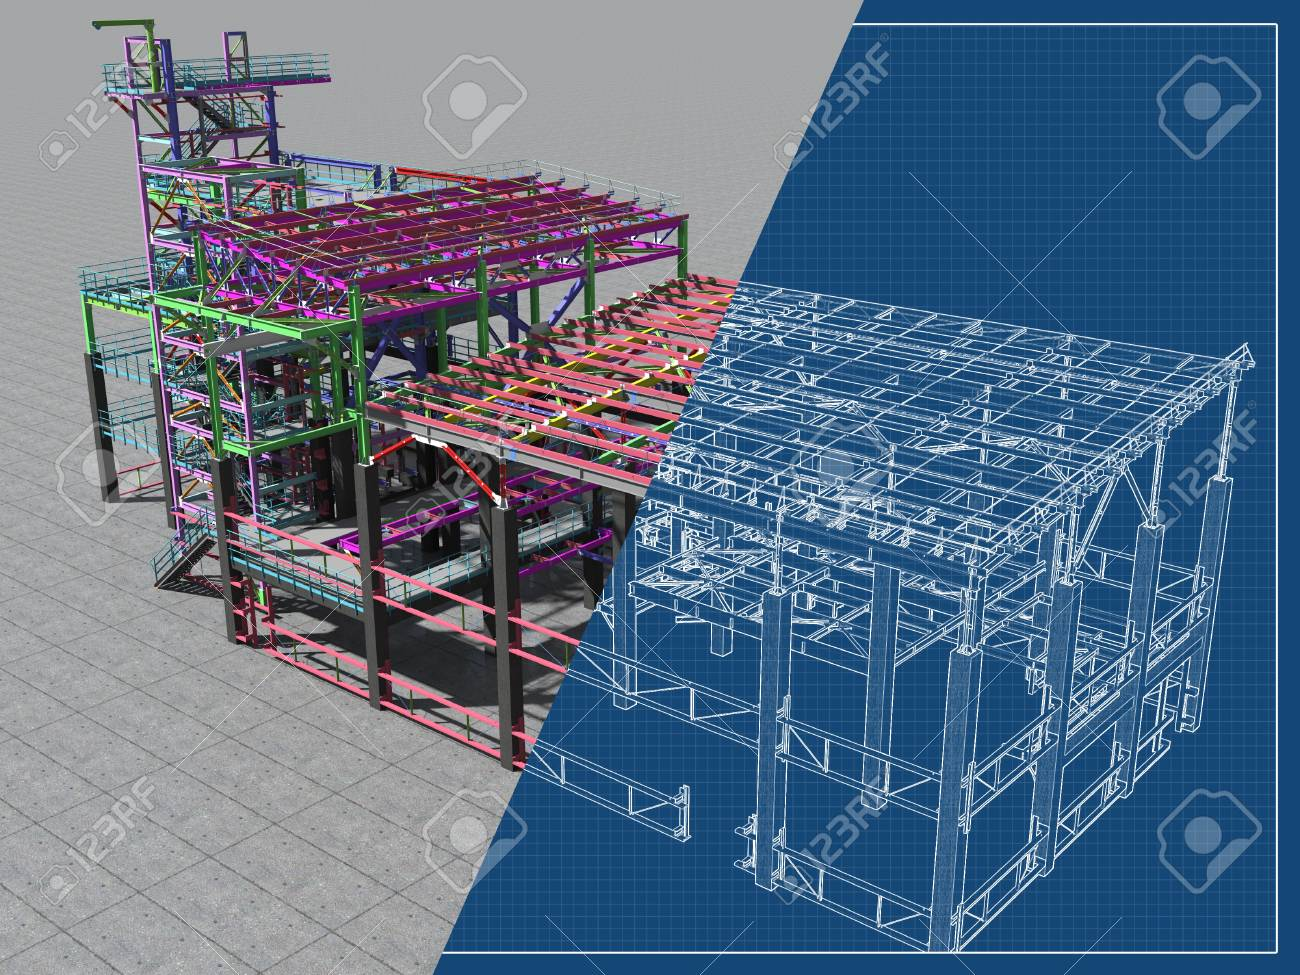 BIM model of a building made of metal construction, metal structure. 3D architectural, construction, industrial and engineering background. 3D rendering. Drawing blueprint. - 116819454